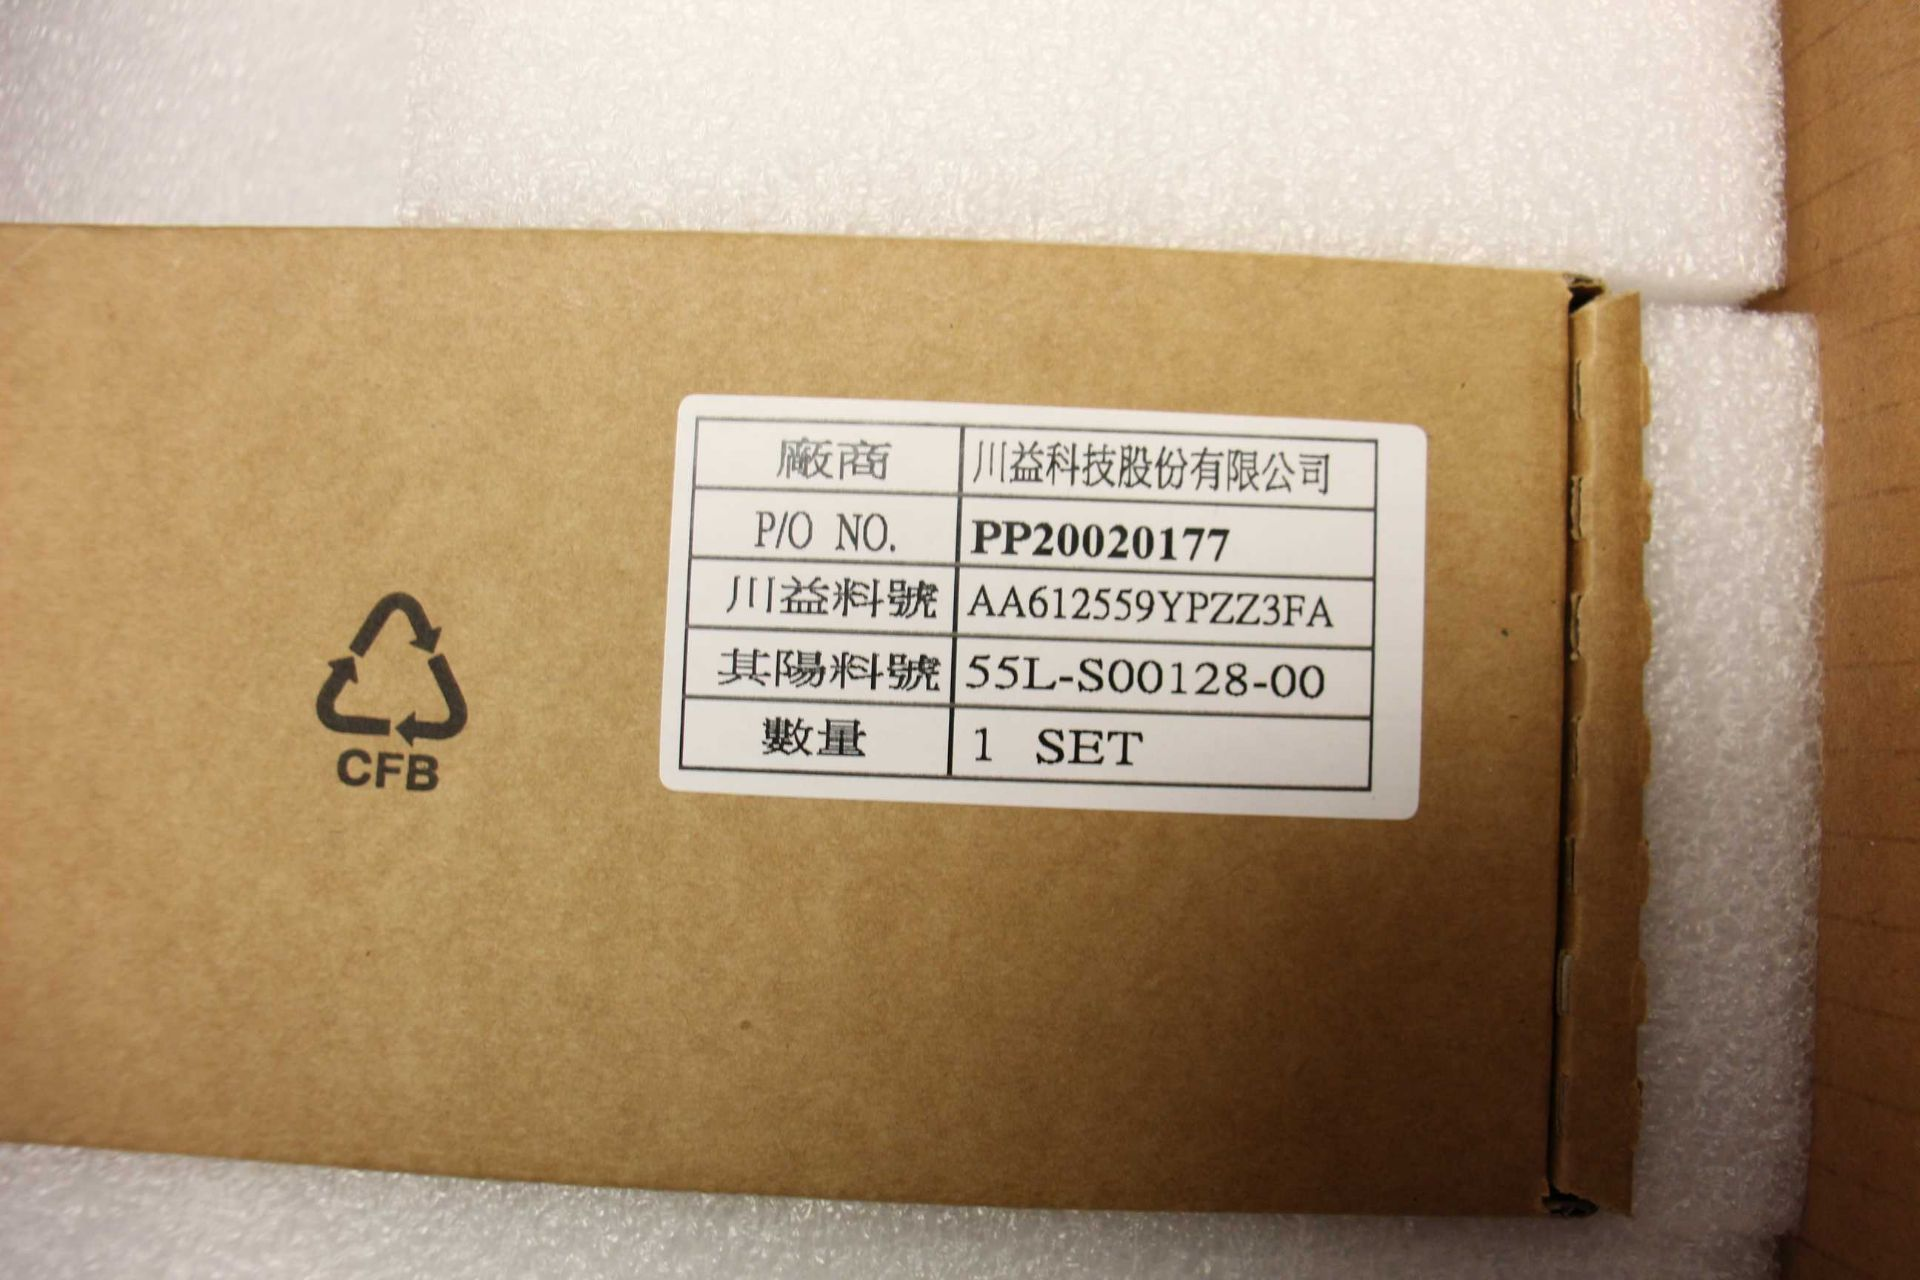 A boxed as new Barracuda Load Balancer ADC 640 (BBF640B BAR-BF-139349) (Rails, cables and manual - Image 15 of 18